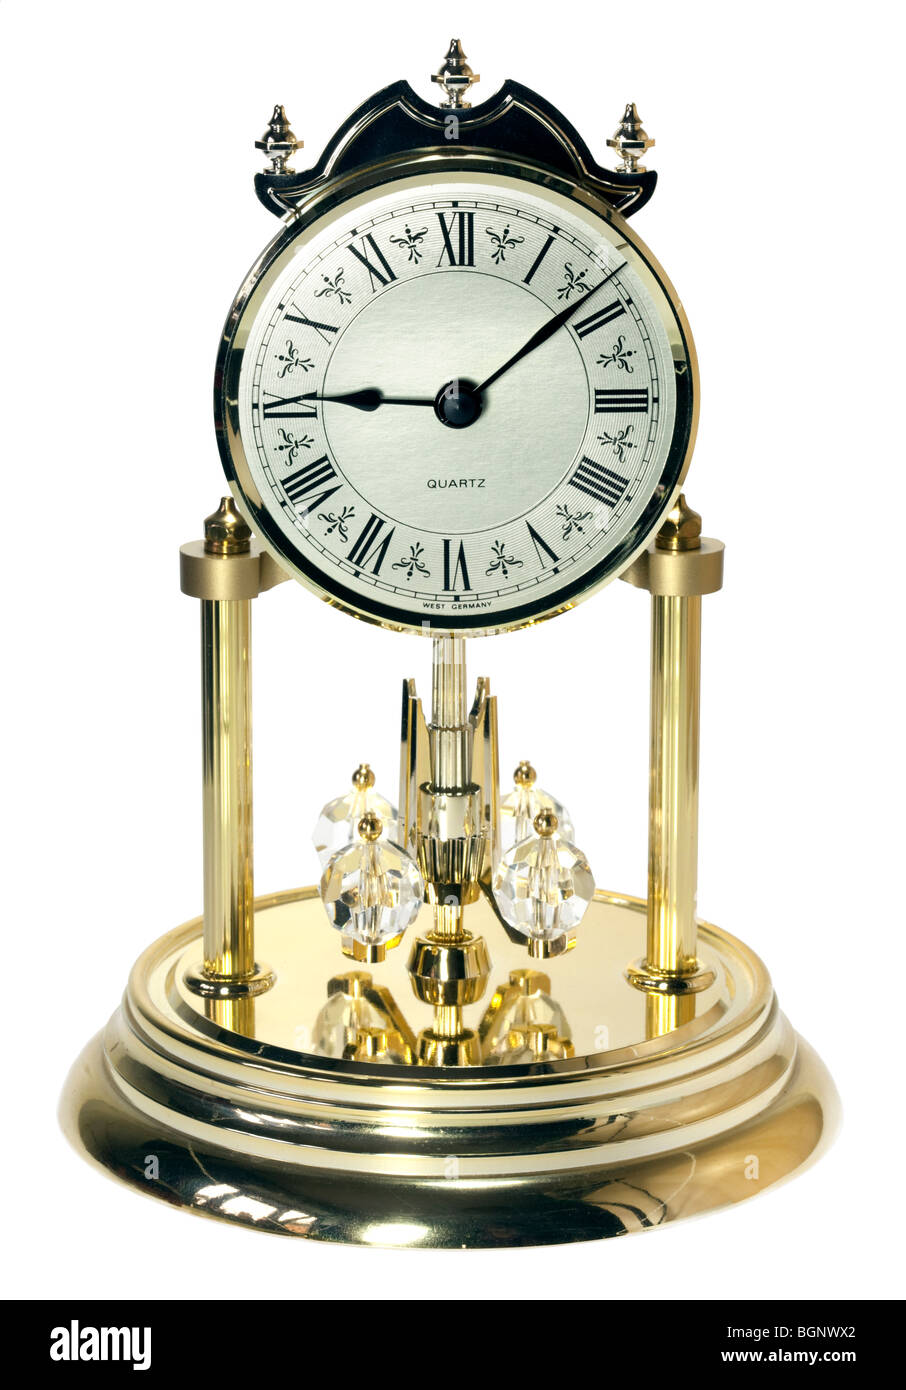 Ornate Rotating Pendulum Clock - Stock Image